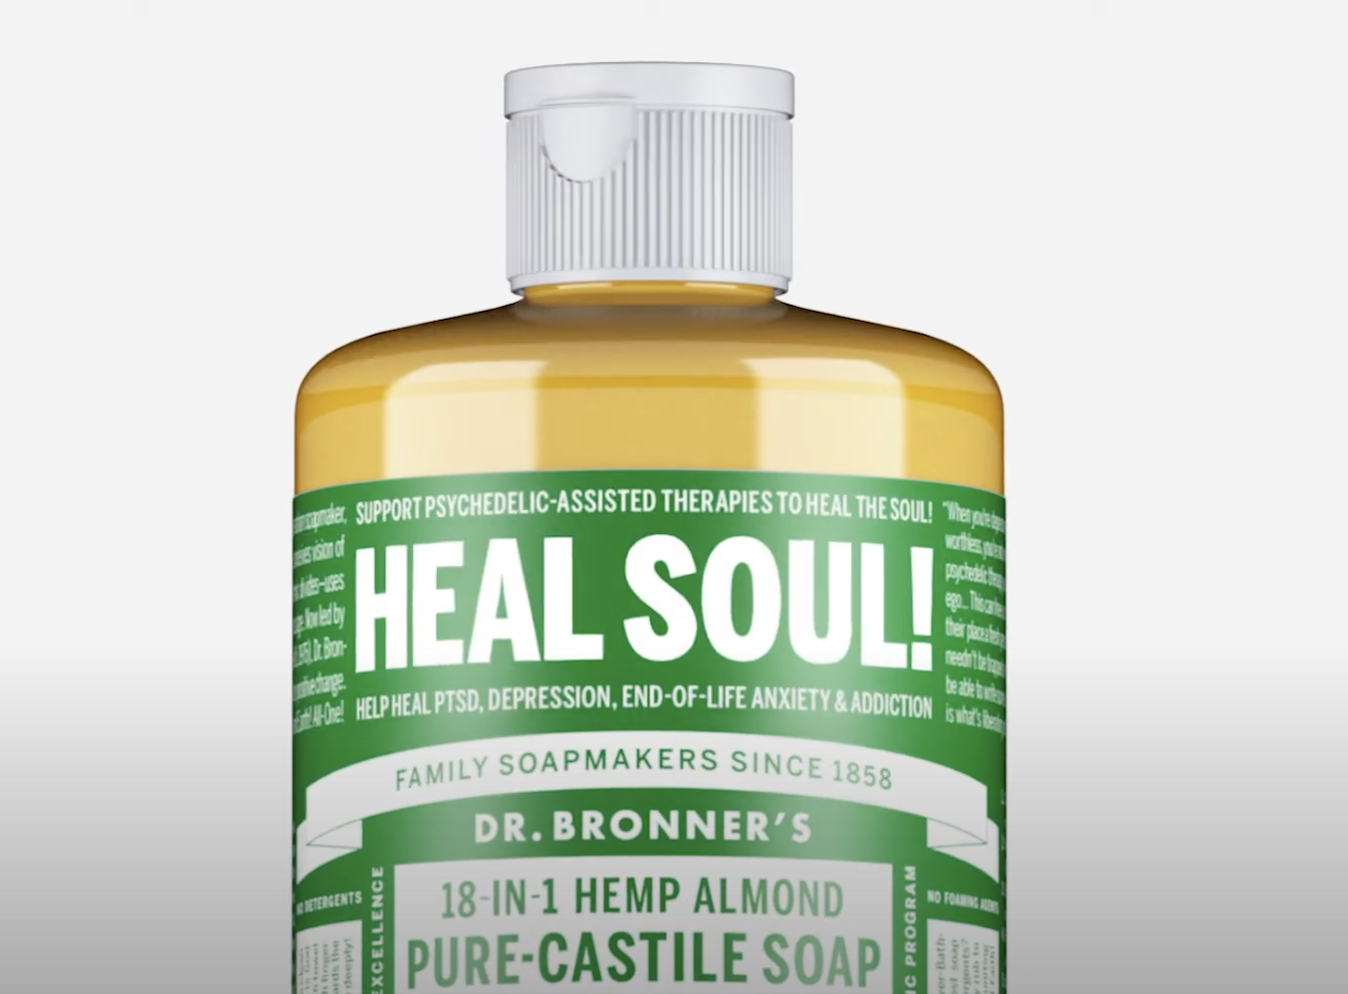 Dr. Bronner's Soap Donates $3 Million to Psychedelic Research and Advocacy